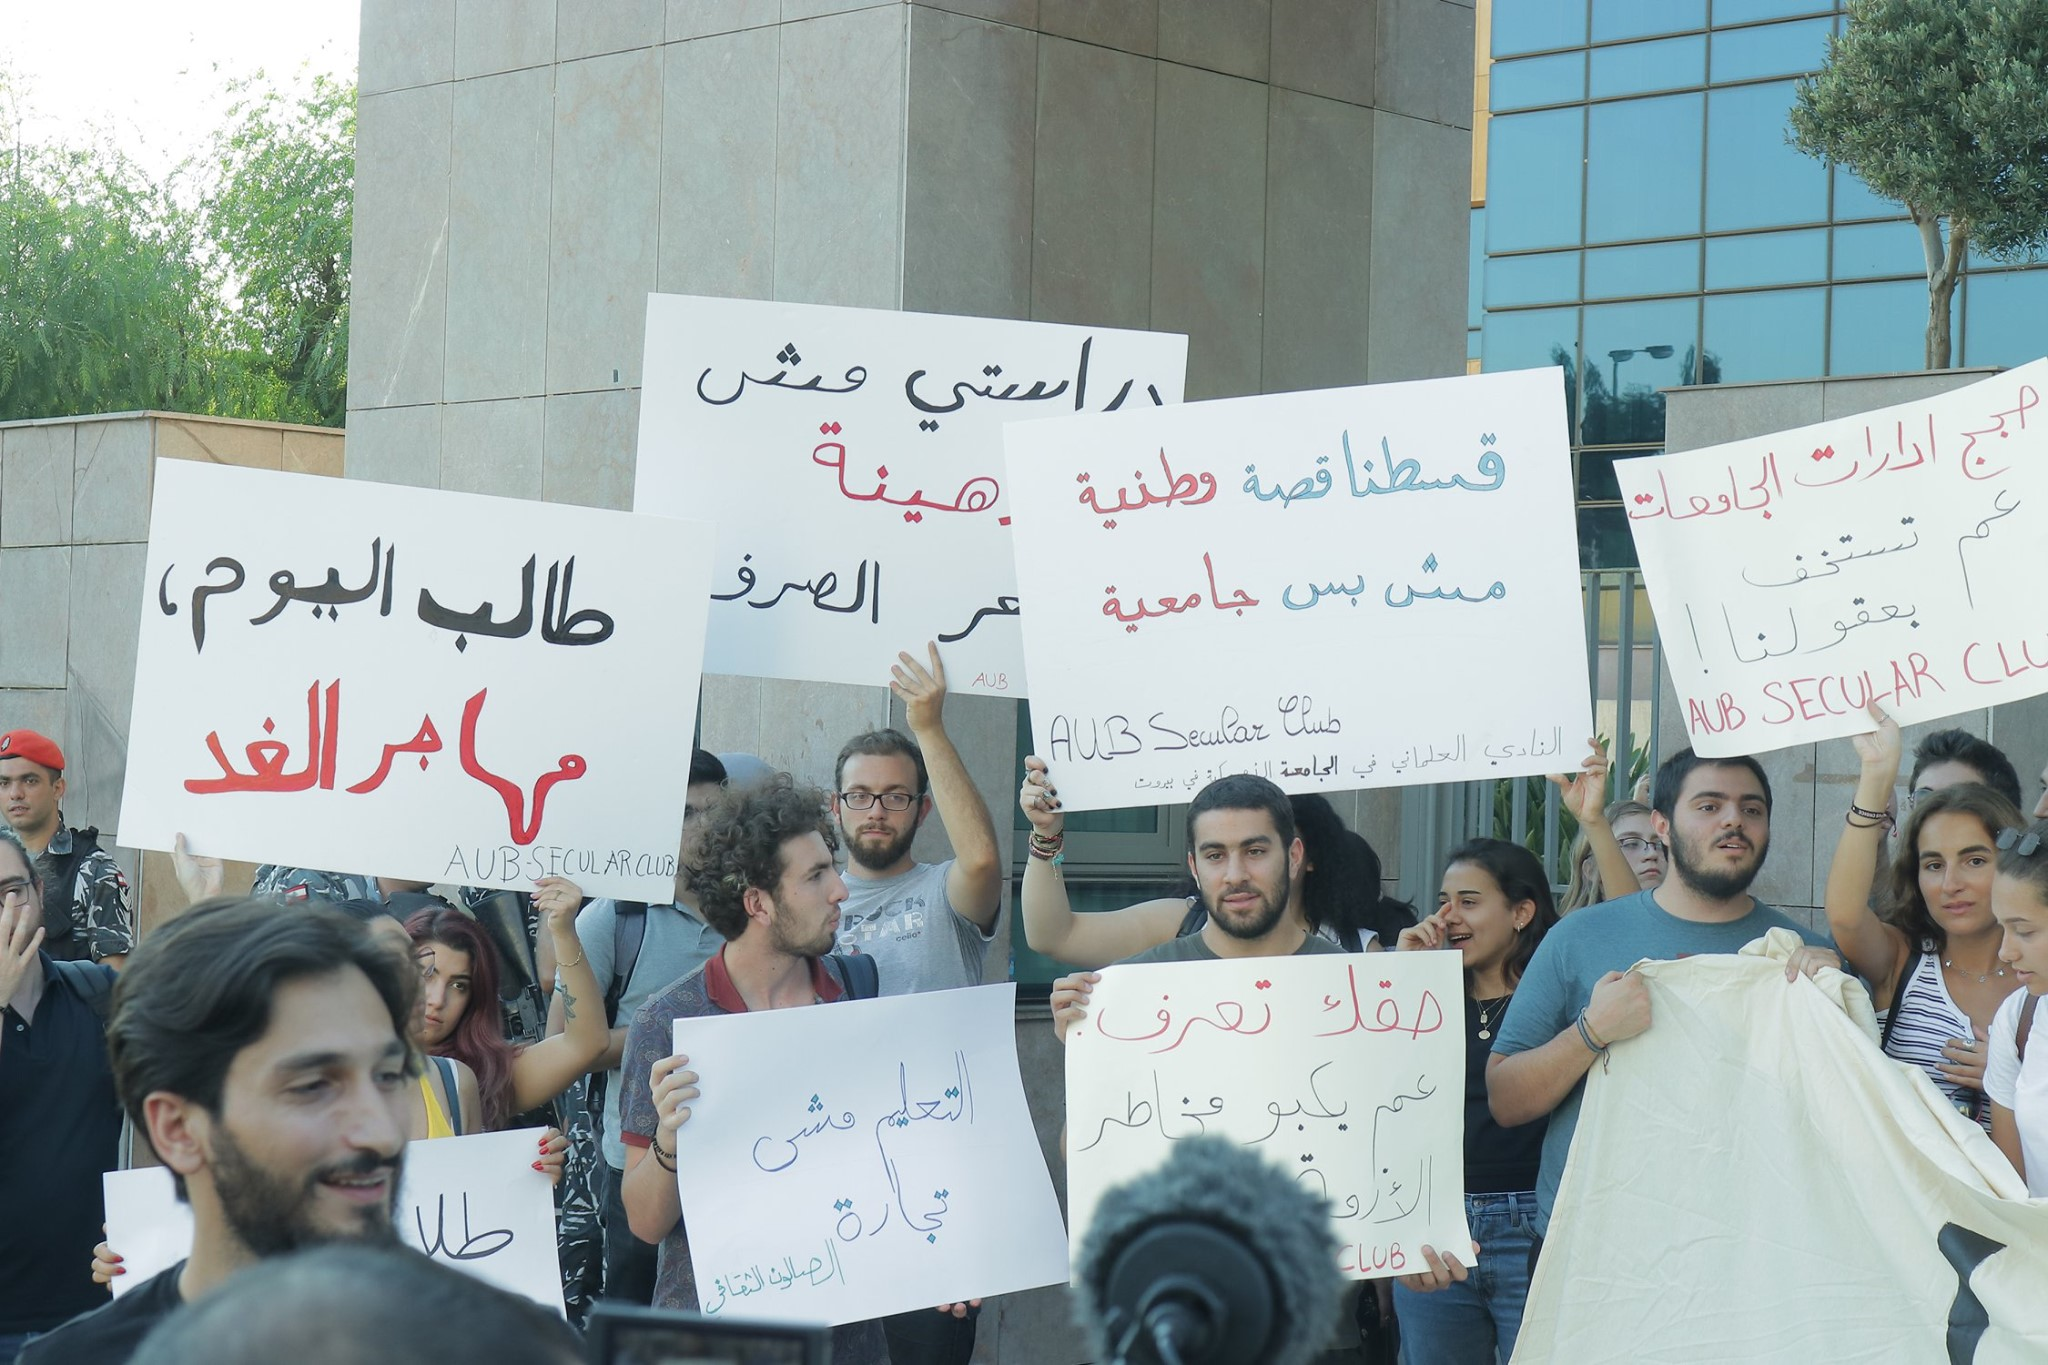 Students protest the tuition dollarization in front of the Ministry of Education in Lebanon in early 2019. (Facebook | @madanetwork)